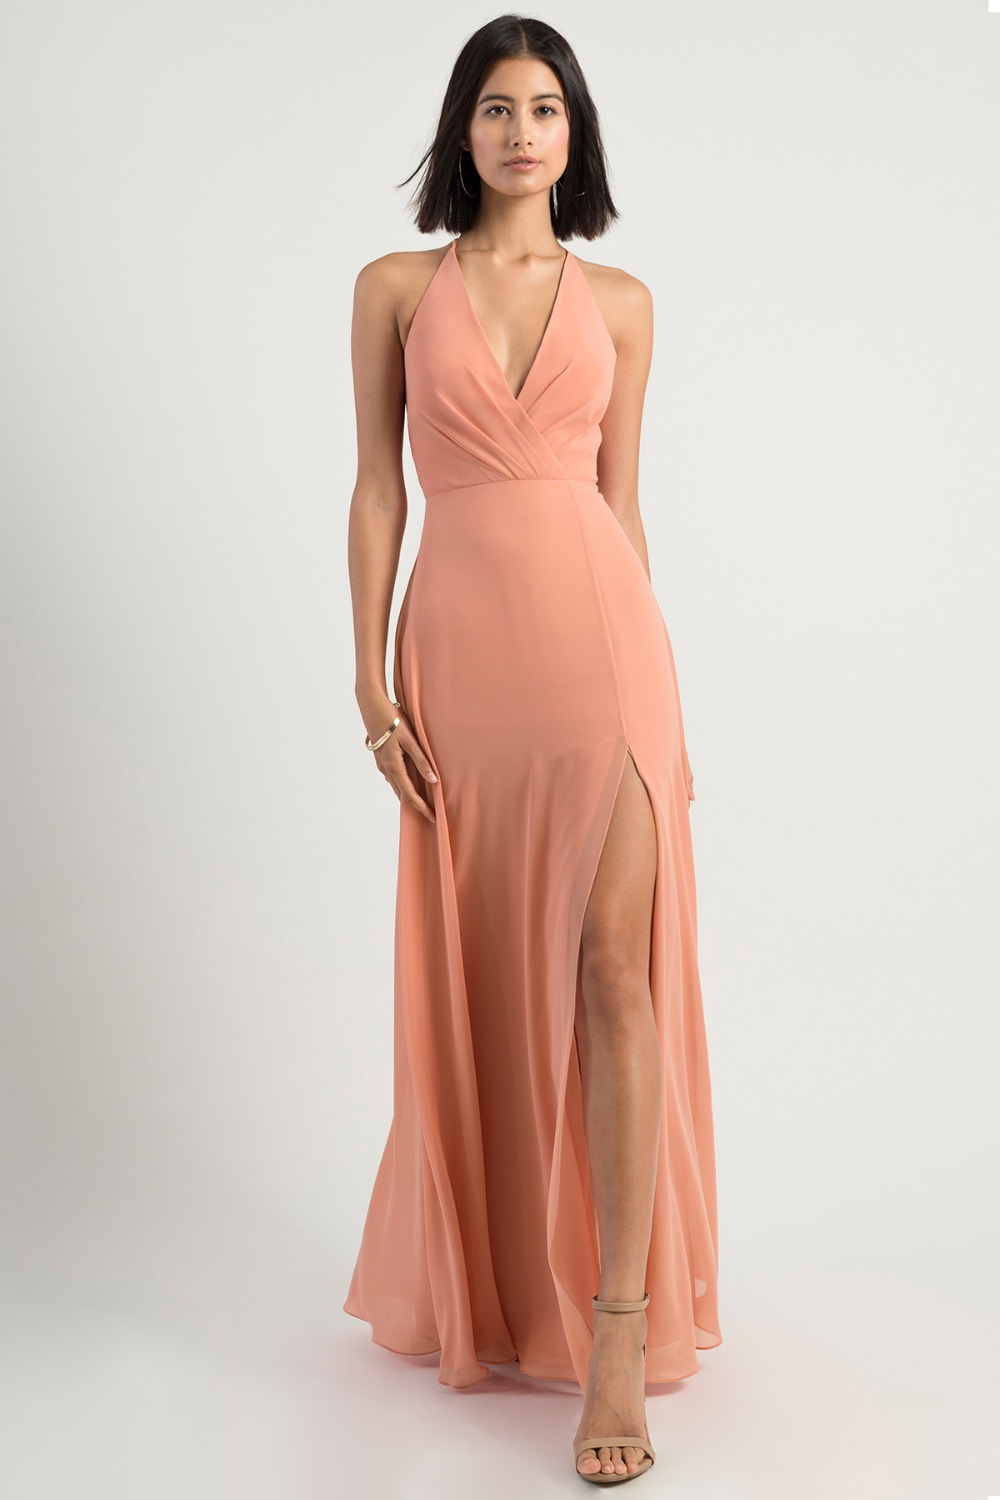 Bryce Sedona Sunset bridesmaid dress by Jenny Yoo